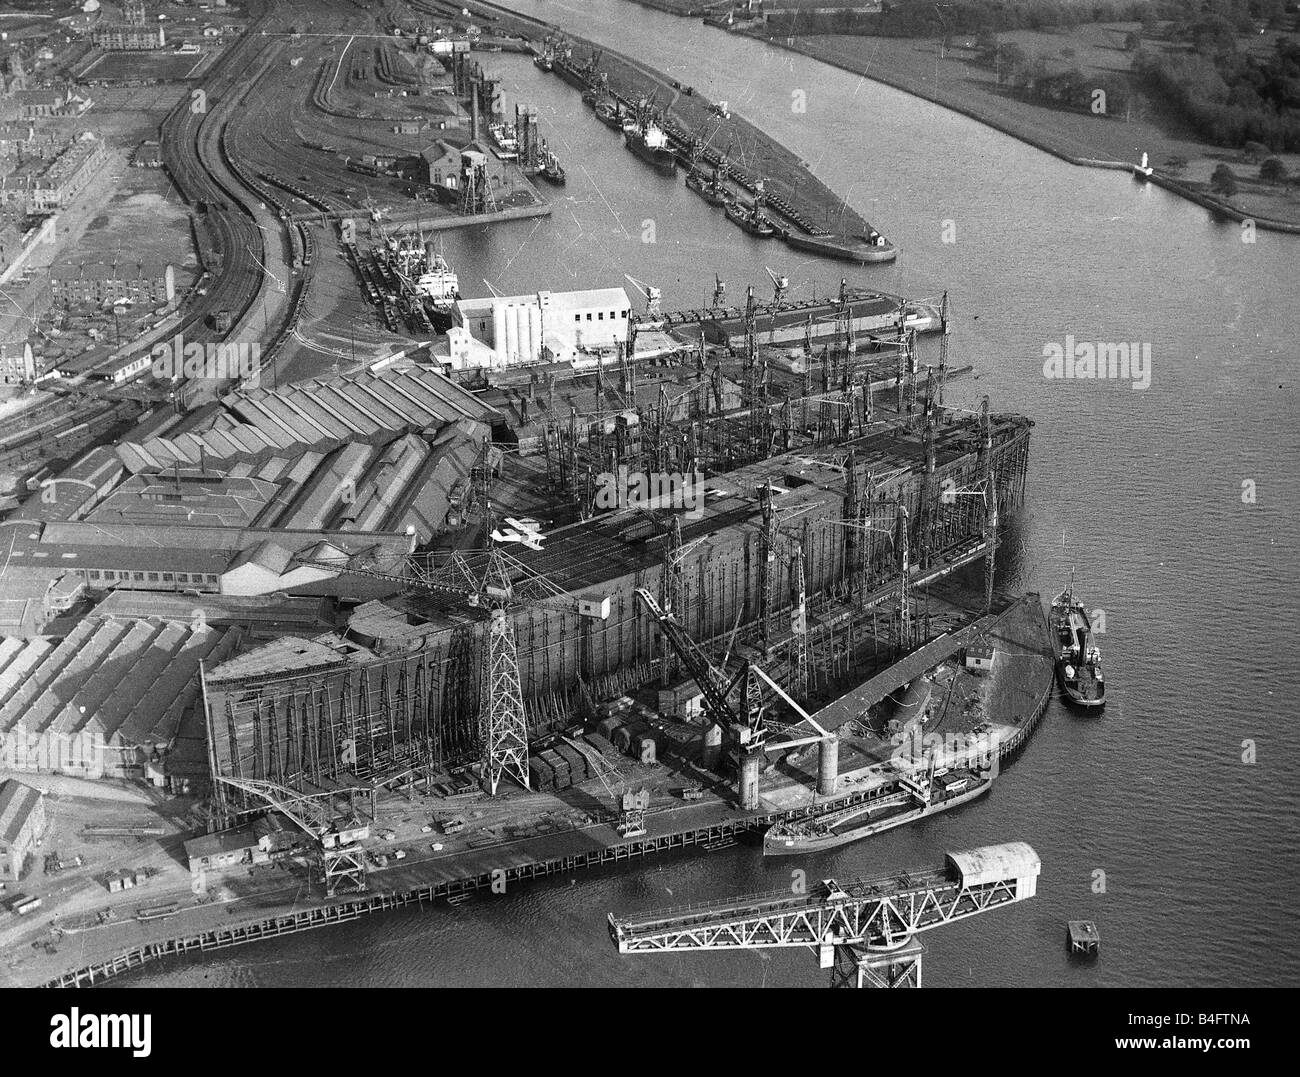 Queen Mary Ship Being Built At John Brown Shipyard In